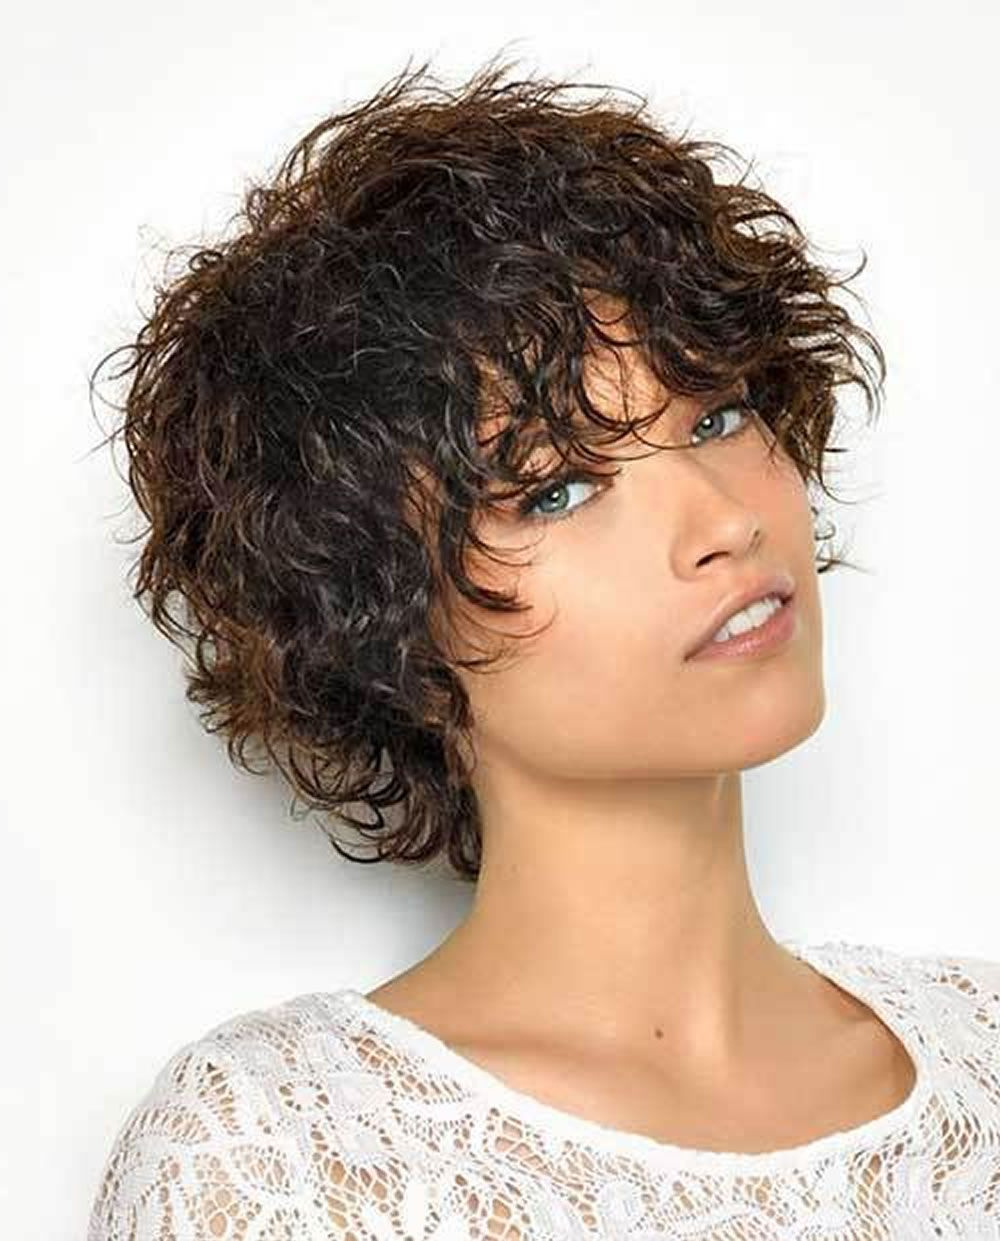 Short Hairstyles For Curly Hair 2019 | Latest Hairstyles For Women Throughout Short Haircuts For Women Curly (View 7 of 25)